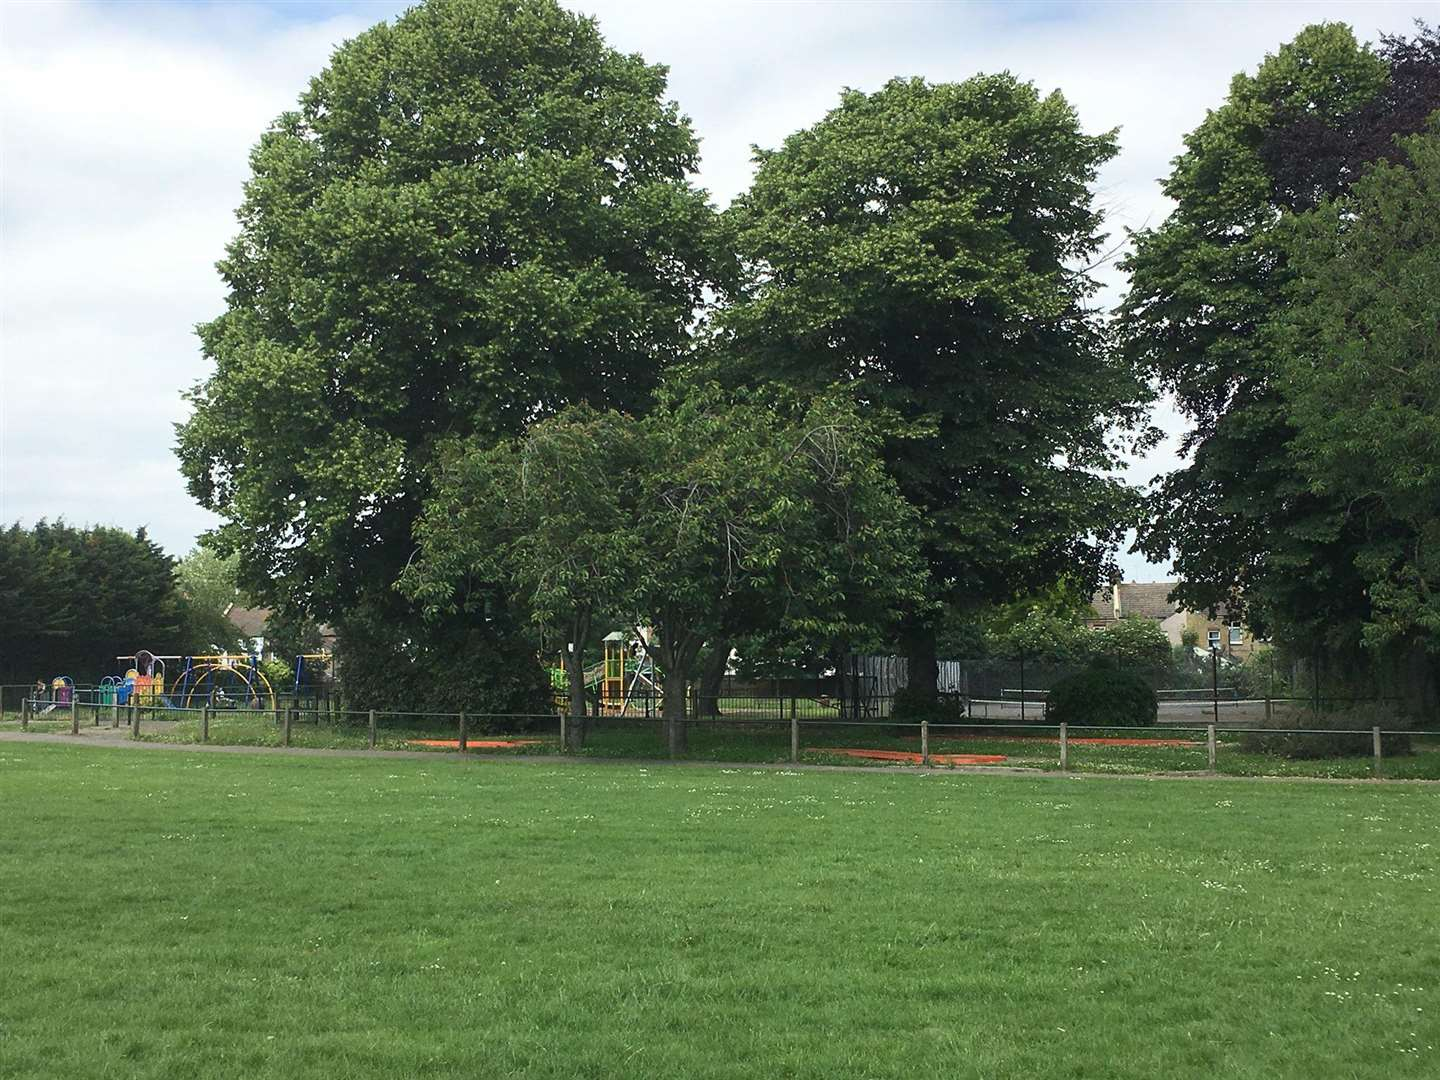 Woodlands Park, Gravesend, where the assault took place. (2448832)